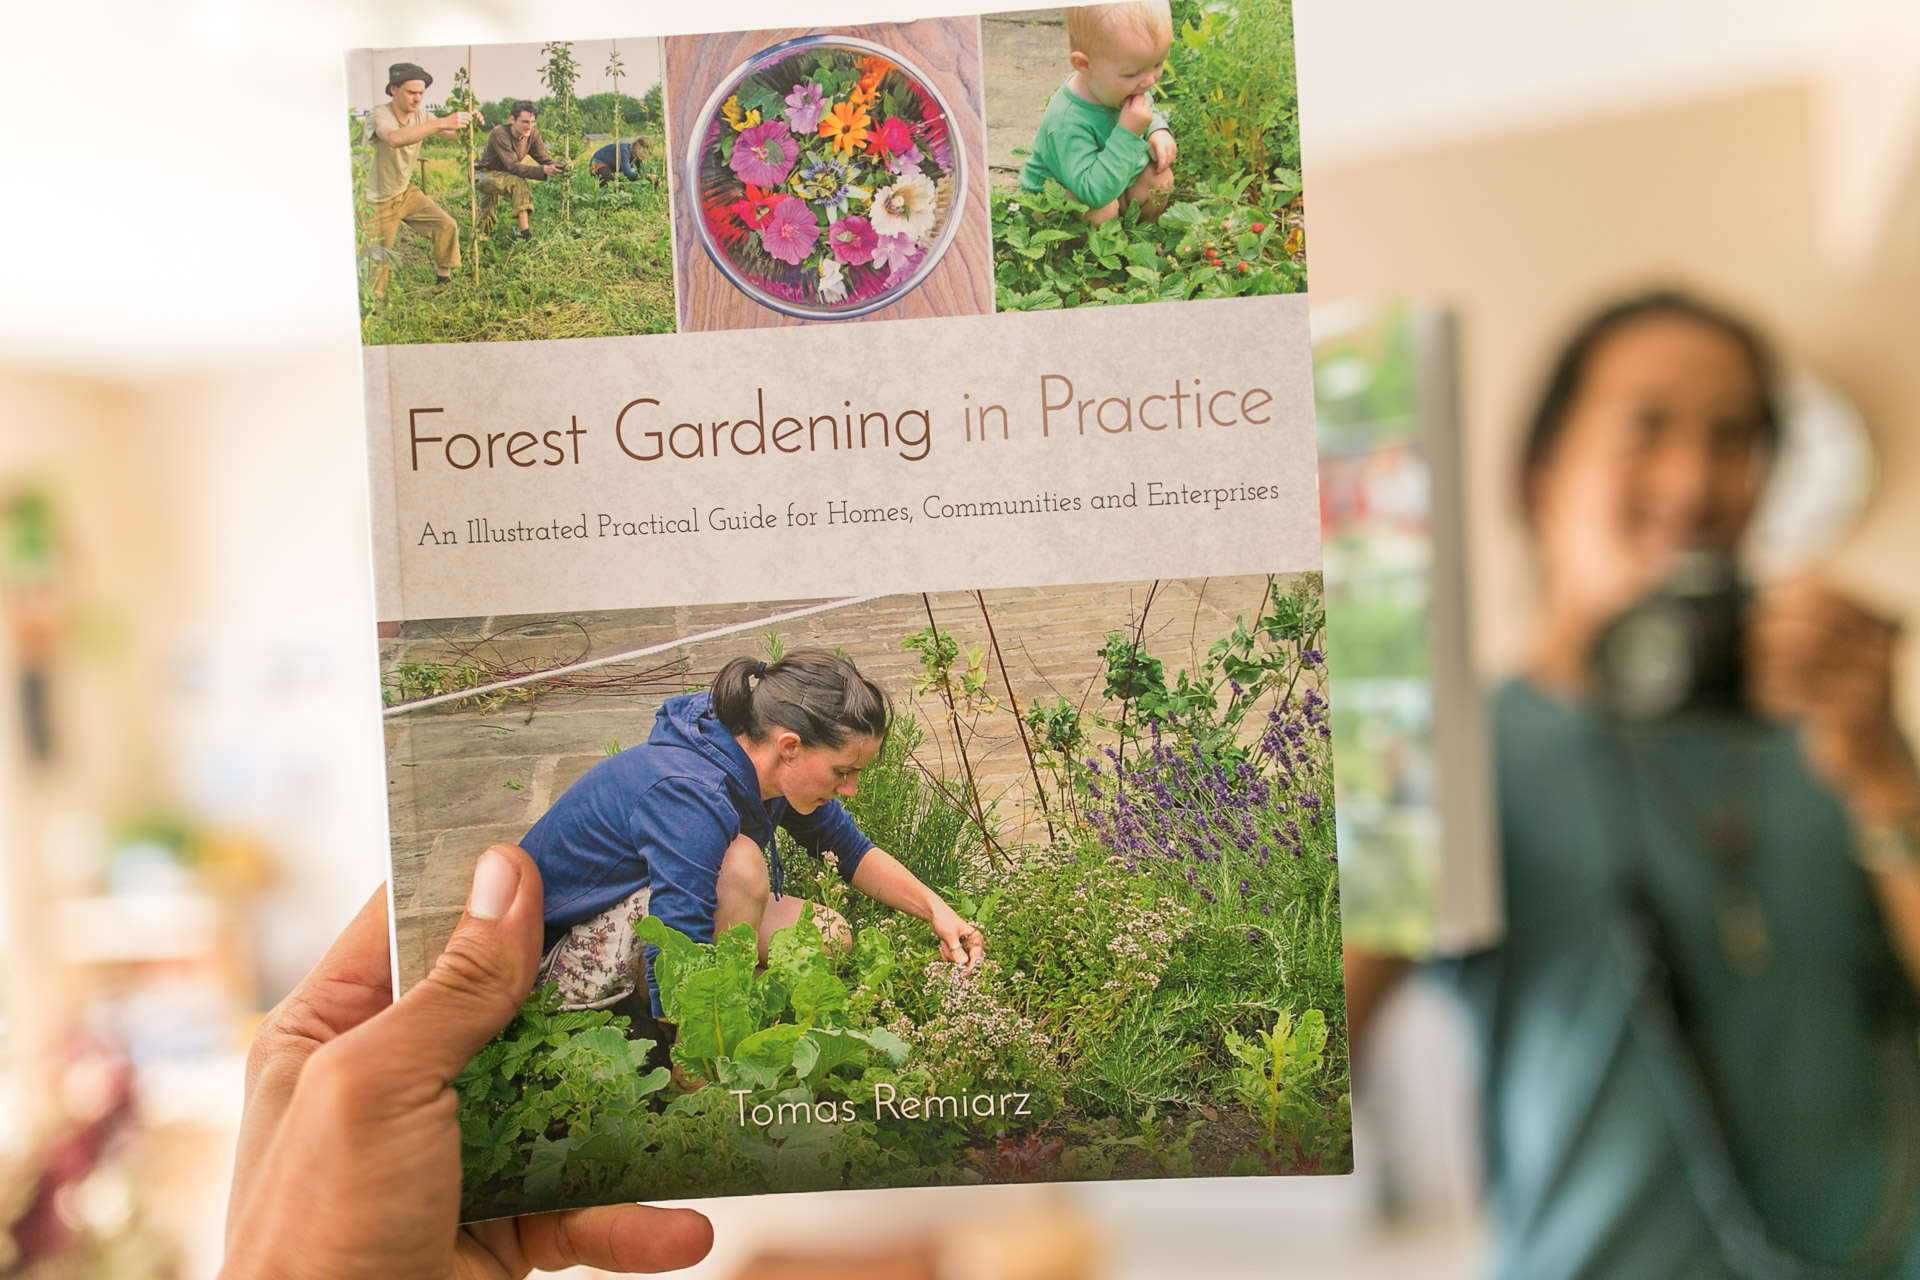 Forest Gardening in Practice  , a book by Tomas Remiarz featuring food forests and permaculture-inspired gardens worldwide. The  Beacon Food Forest  is featured in this wonderful book along with my photos taken there.